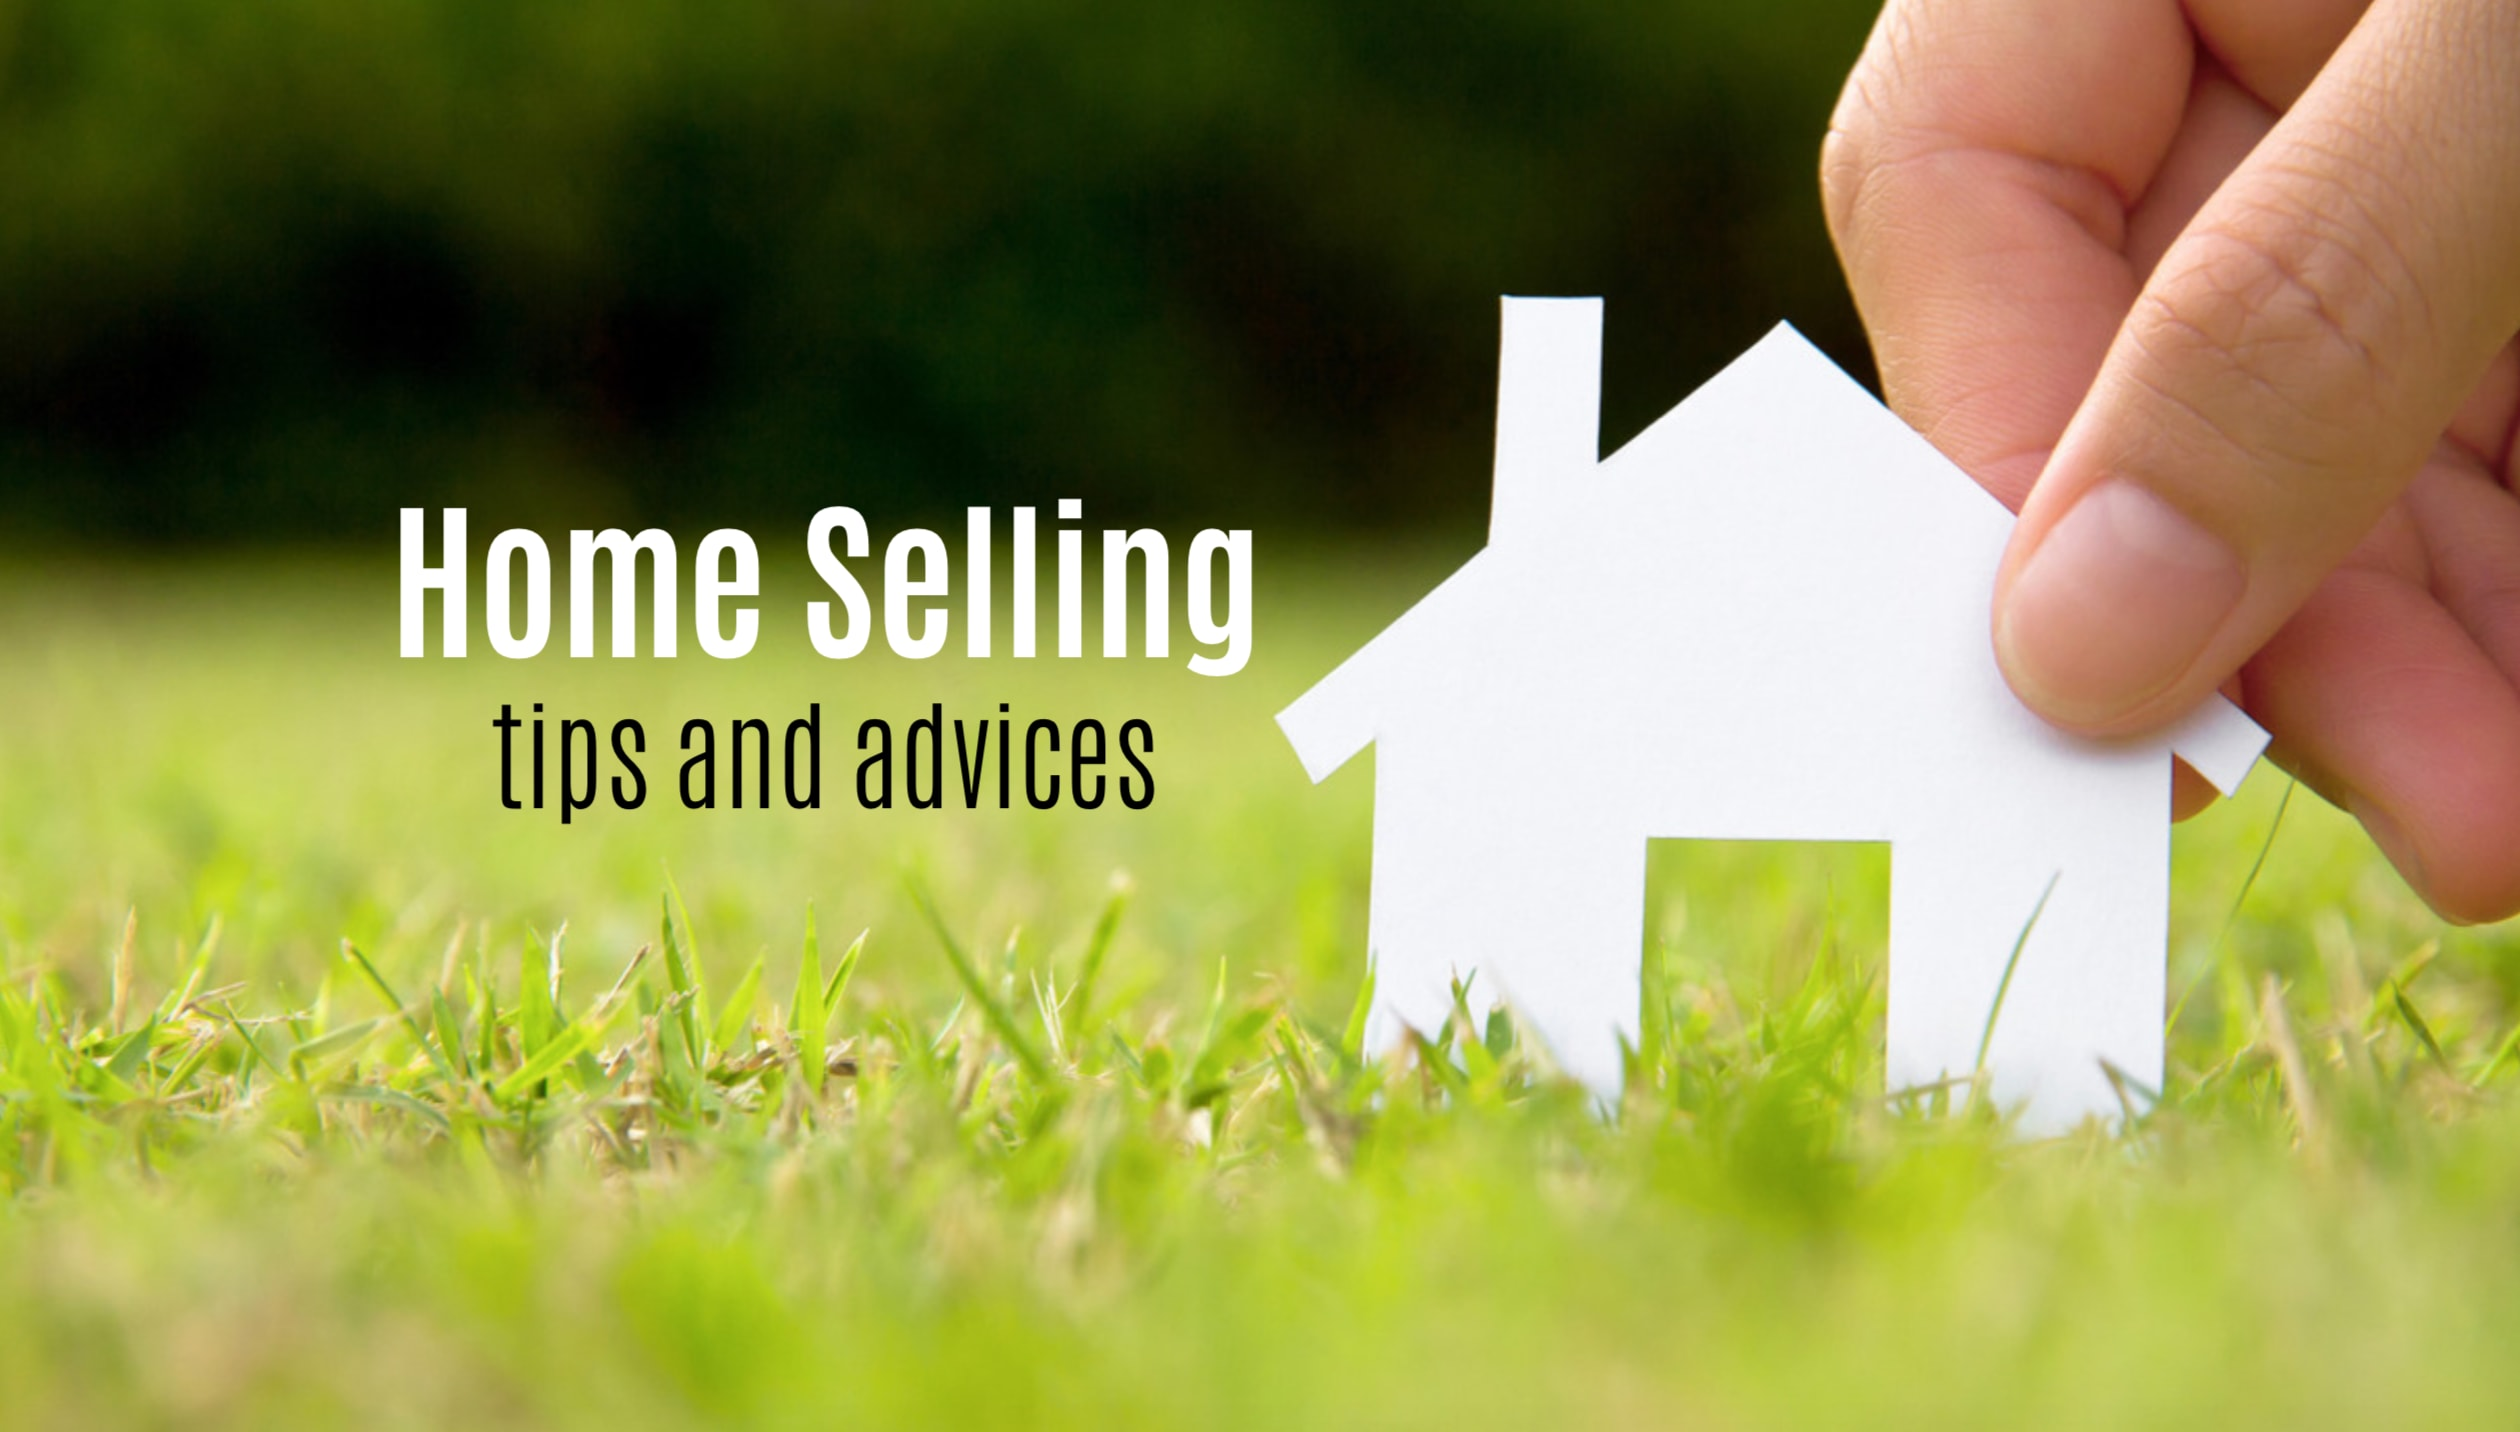 featured image for story, Home Selling tips and advices